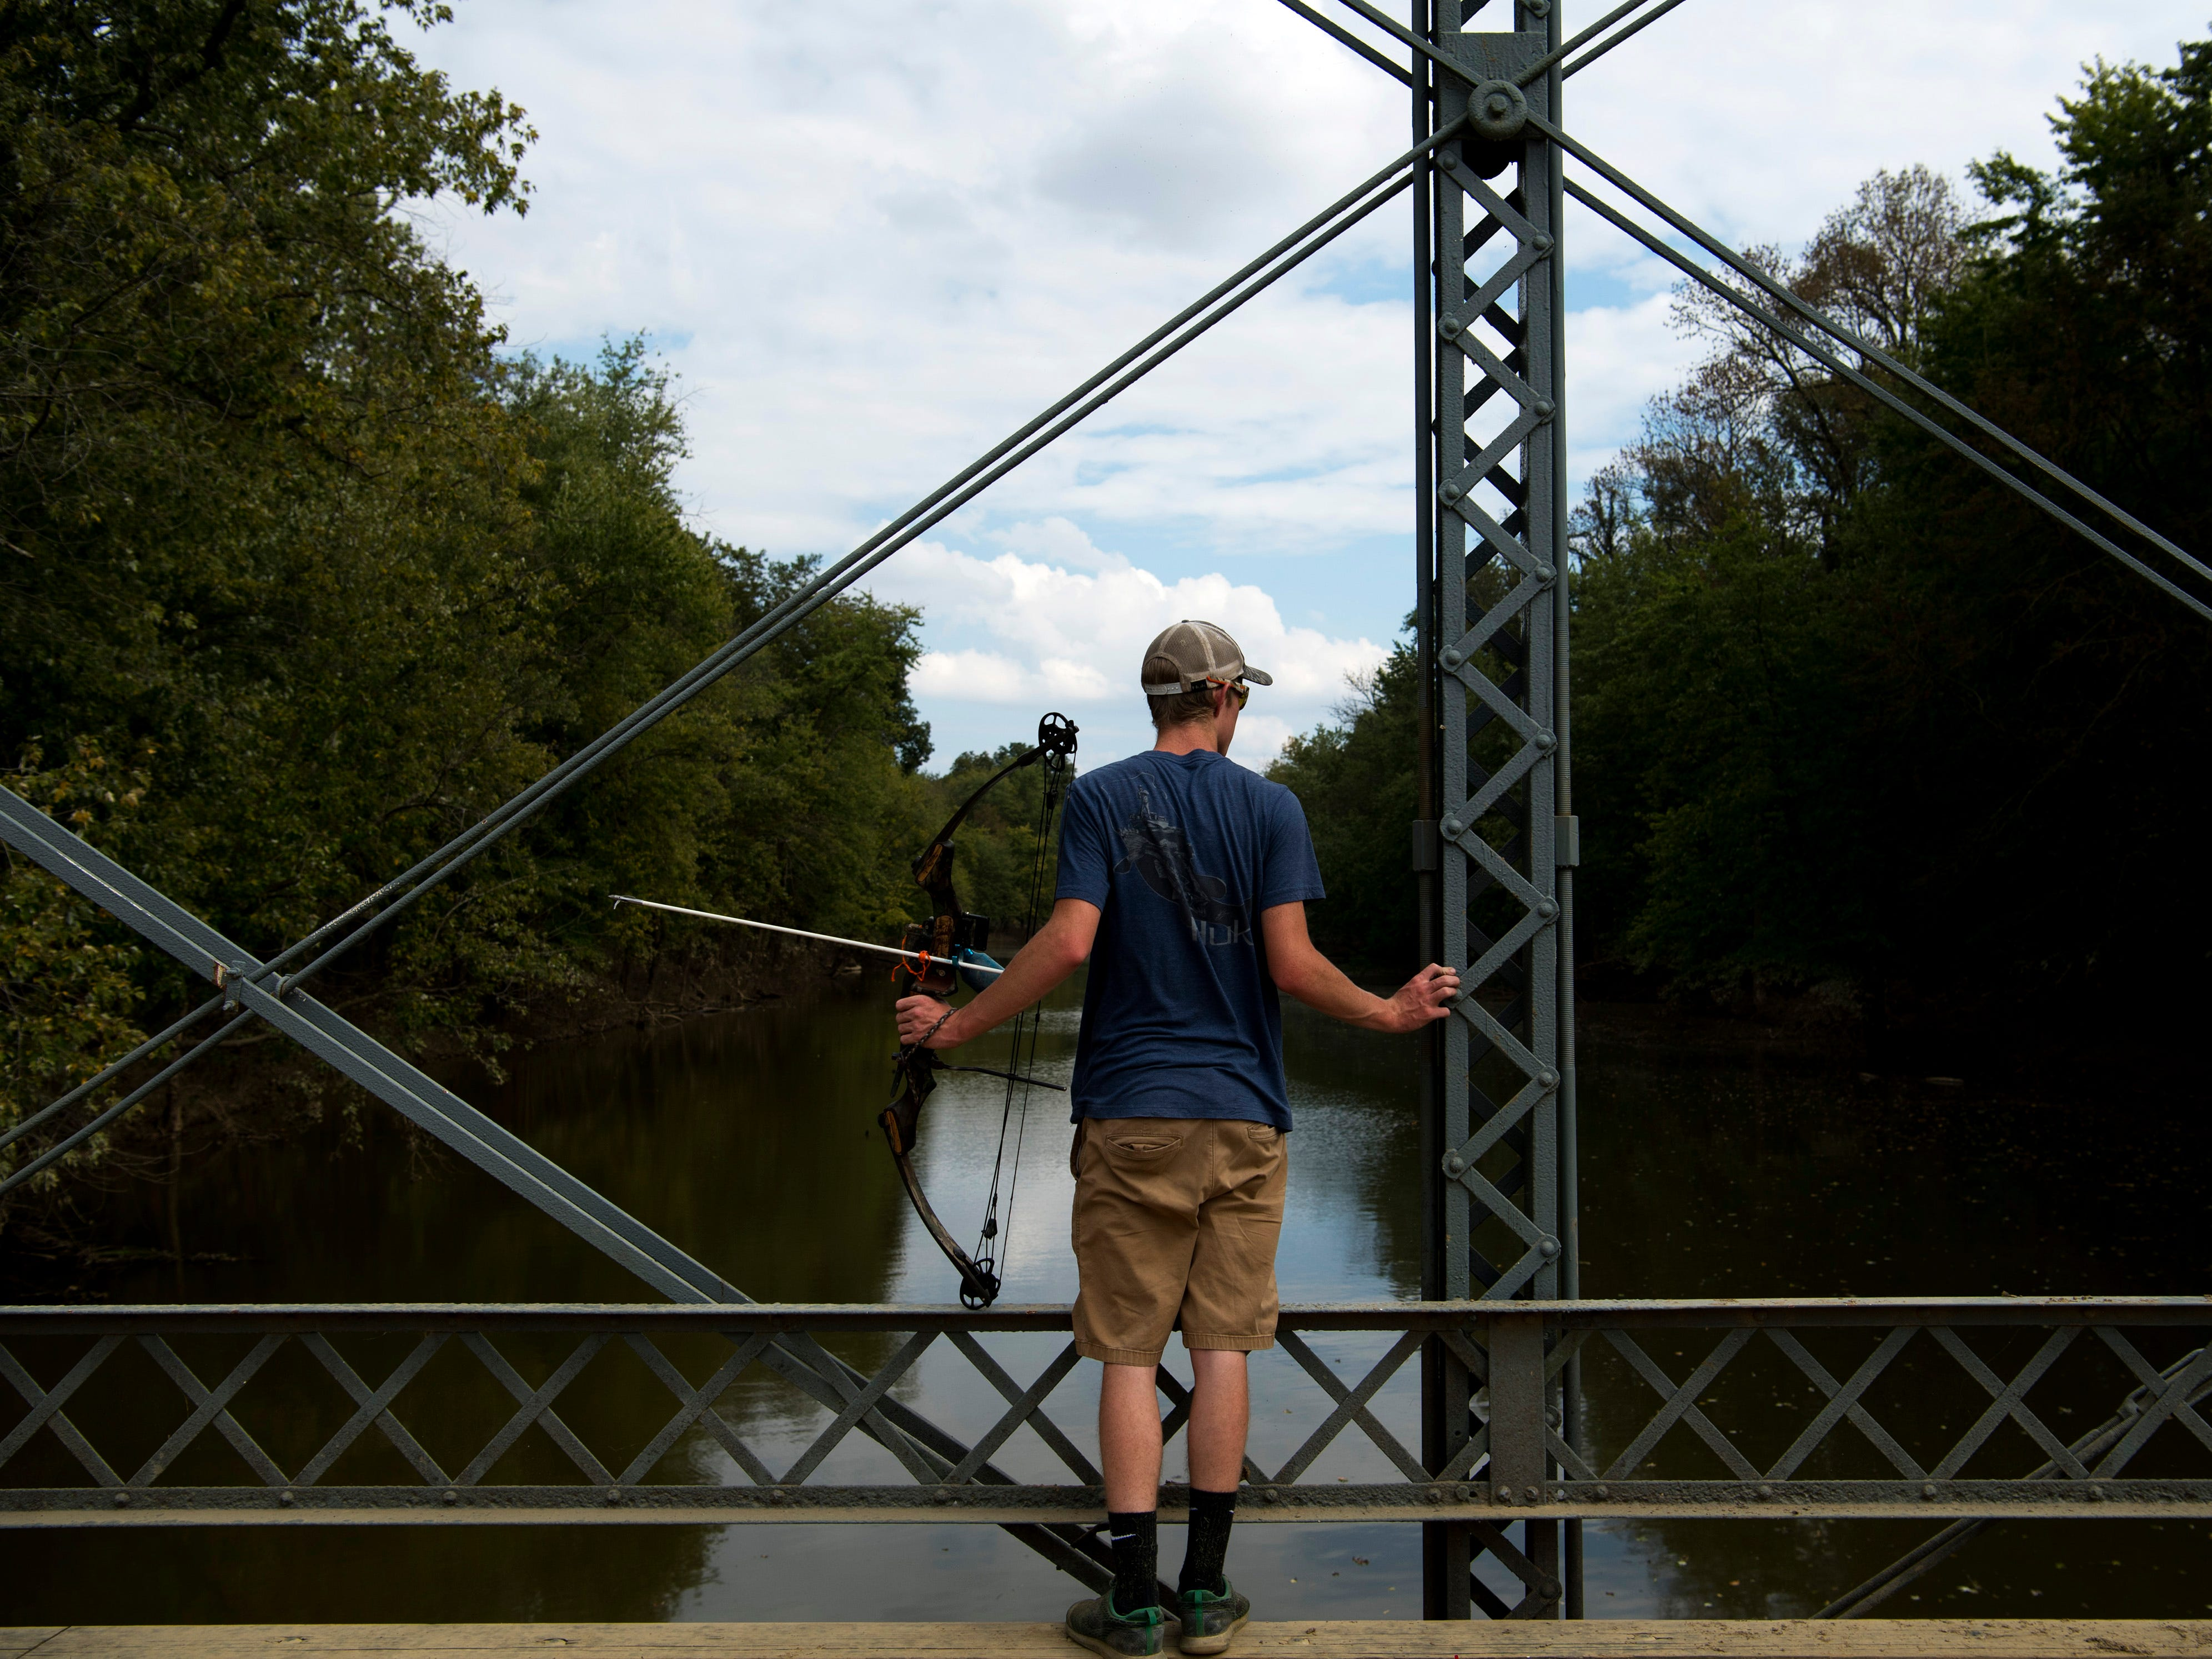 Jarrett Sandage, 17, a Boonville High School student, searches for carp with his bow and arrow above Little Pigeon Creek near Yankeetown, Ind., Monday afternoon. The bridge is a hot spot for local bow fishermen recently had about 30 archers perched atop the wood and steel structure.